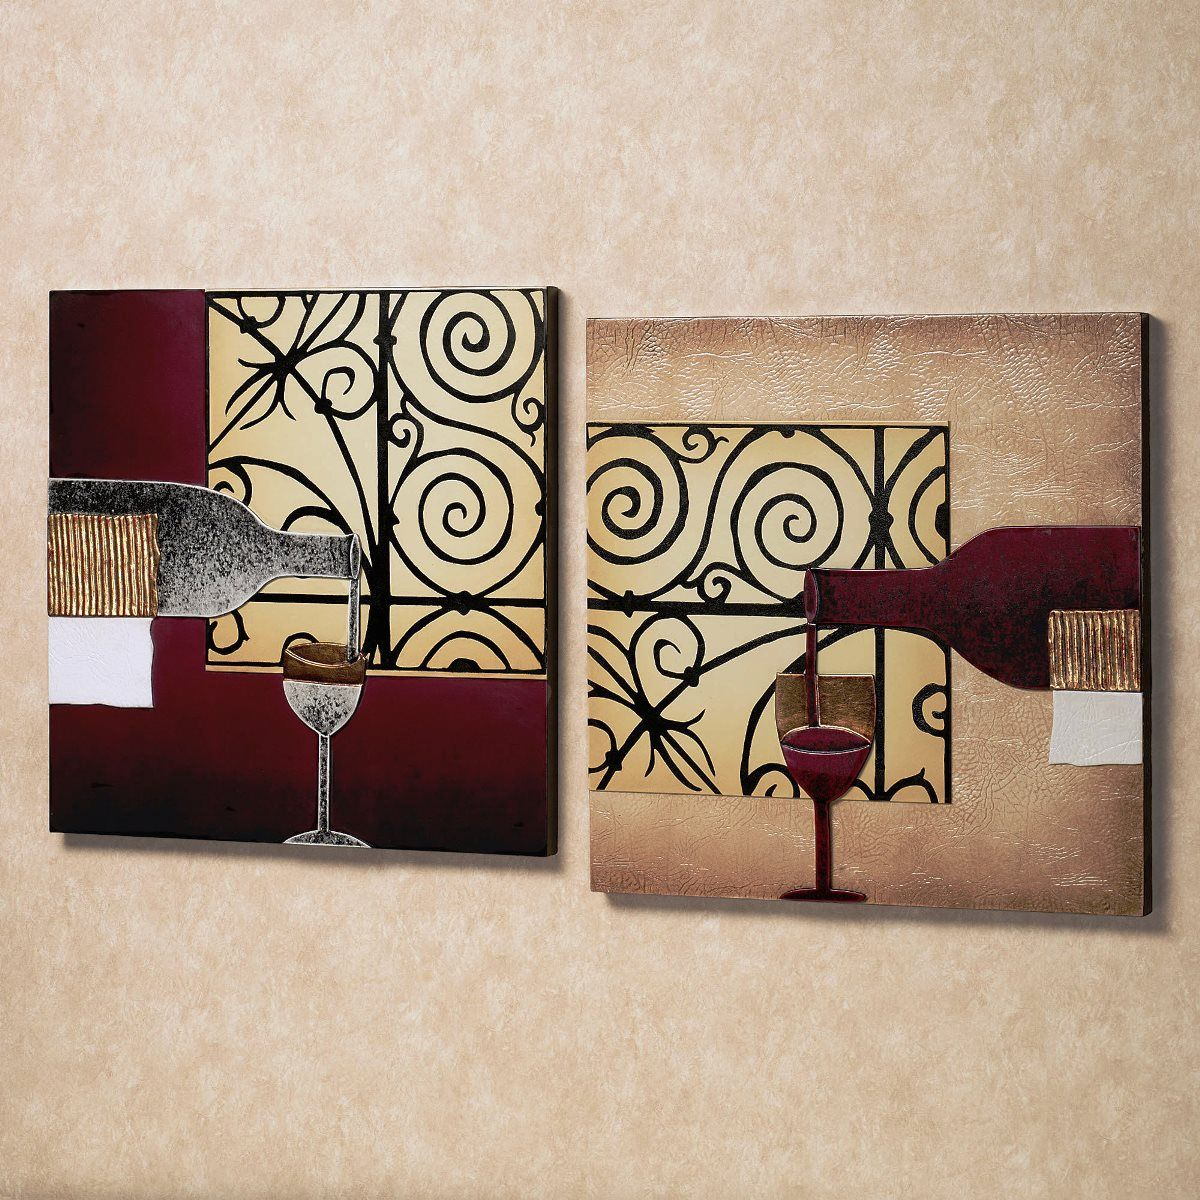 Living Room Pinterest Living Room Wall Art 1000 images about wall art ideas on pinterest wine large canvas and art